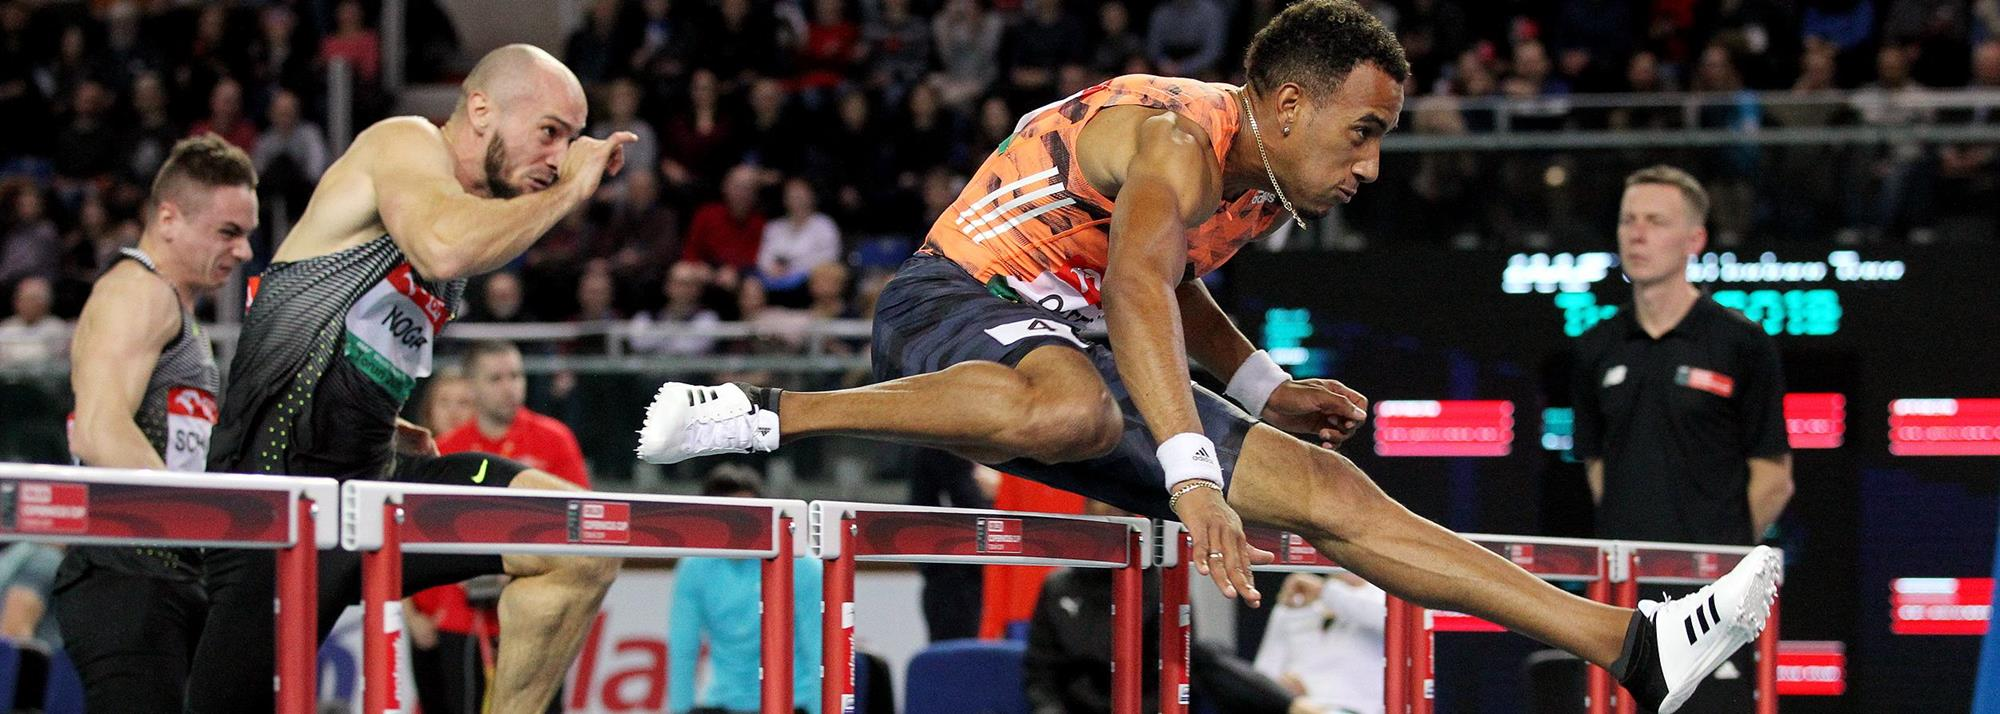 World medallists set to feature in hurdles, 3000m and long jump in Lievin